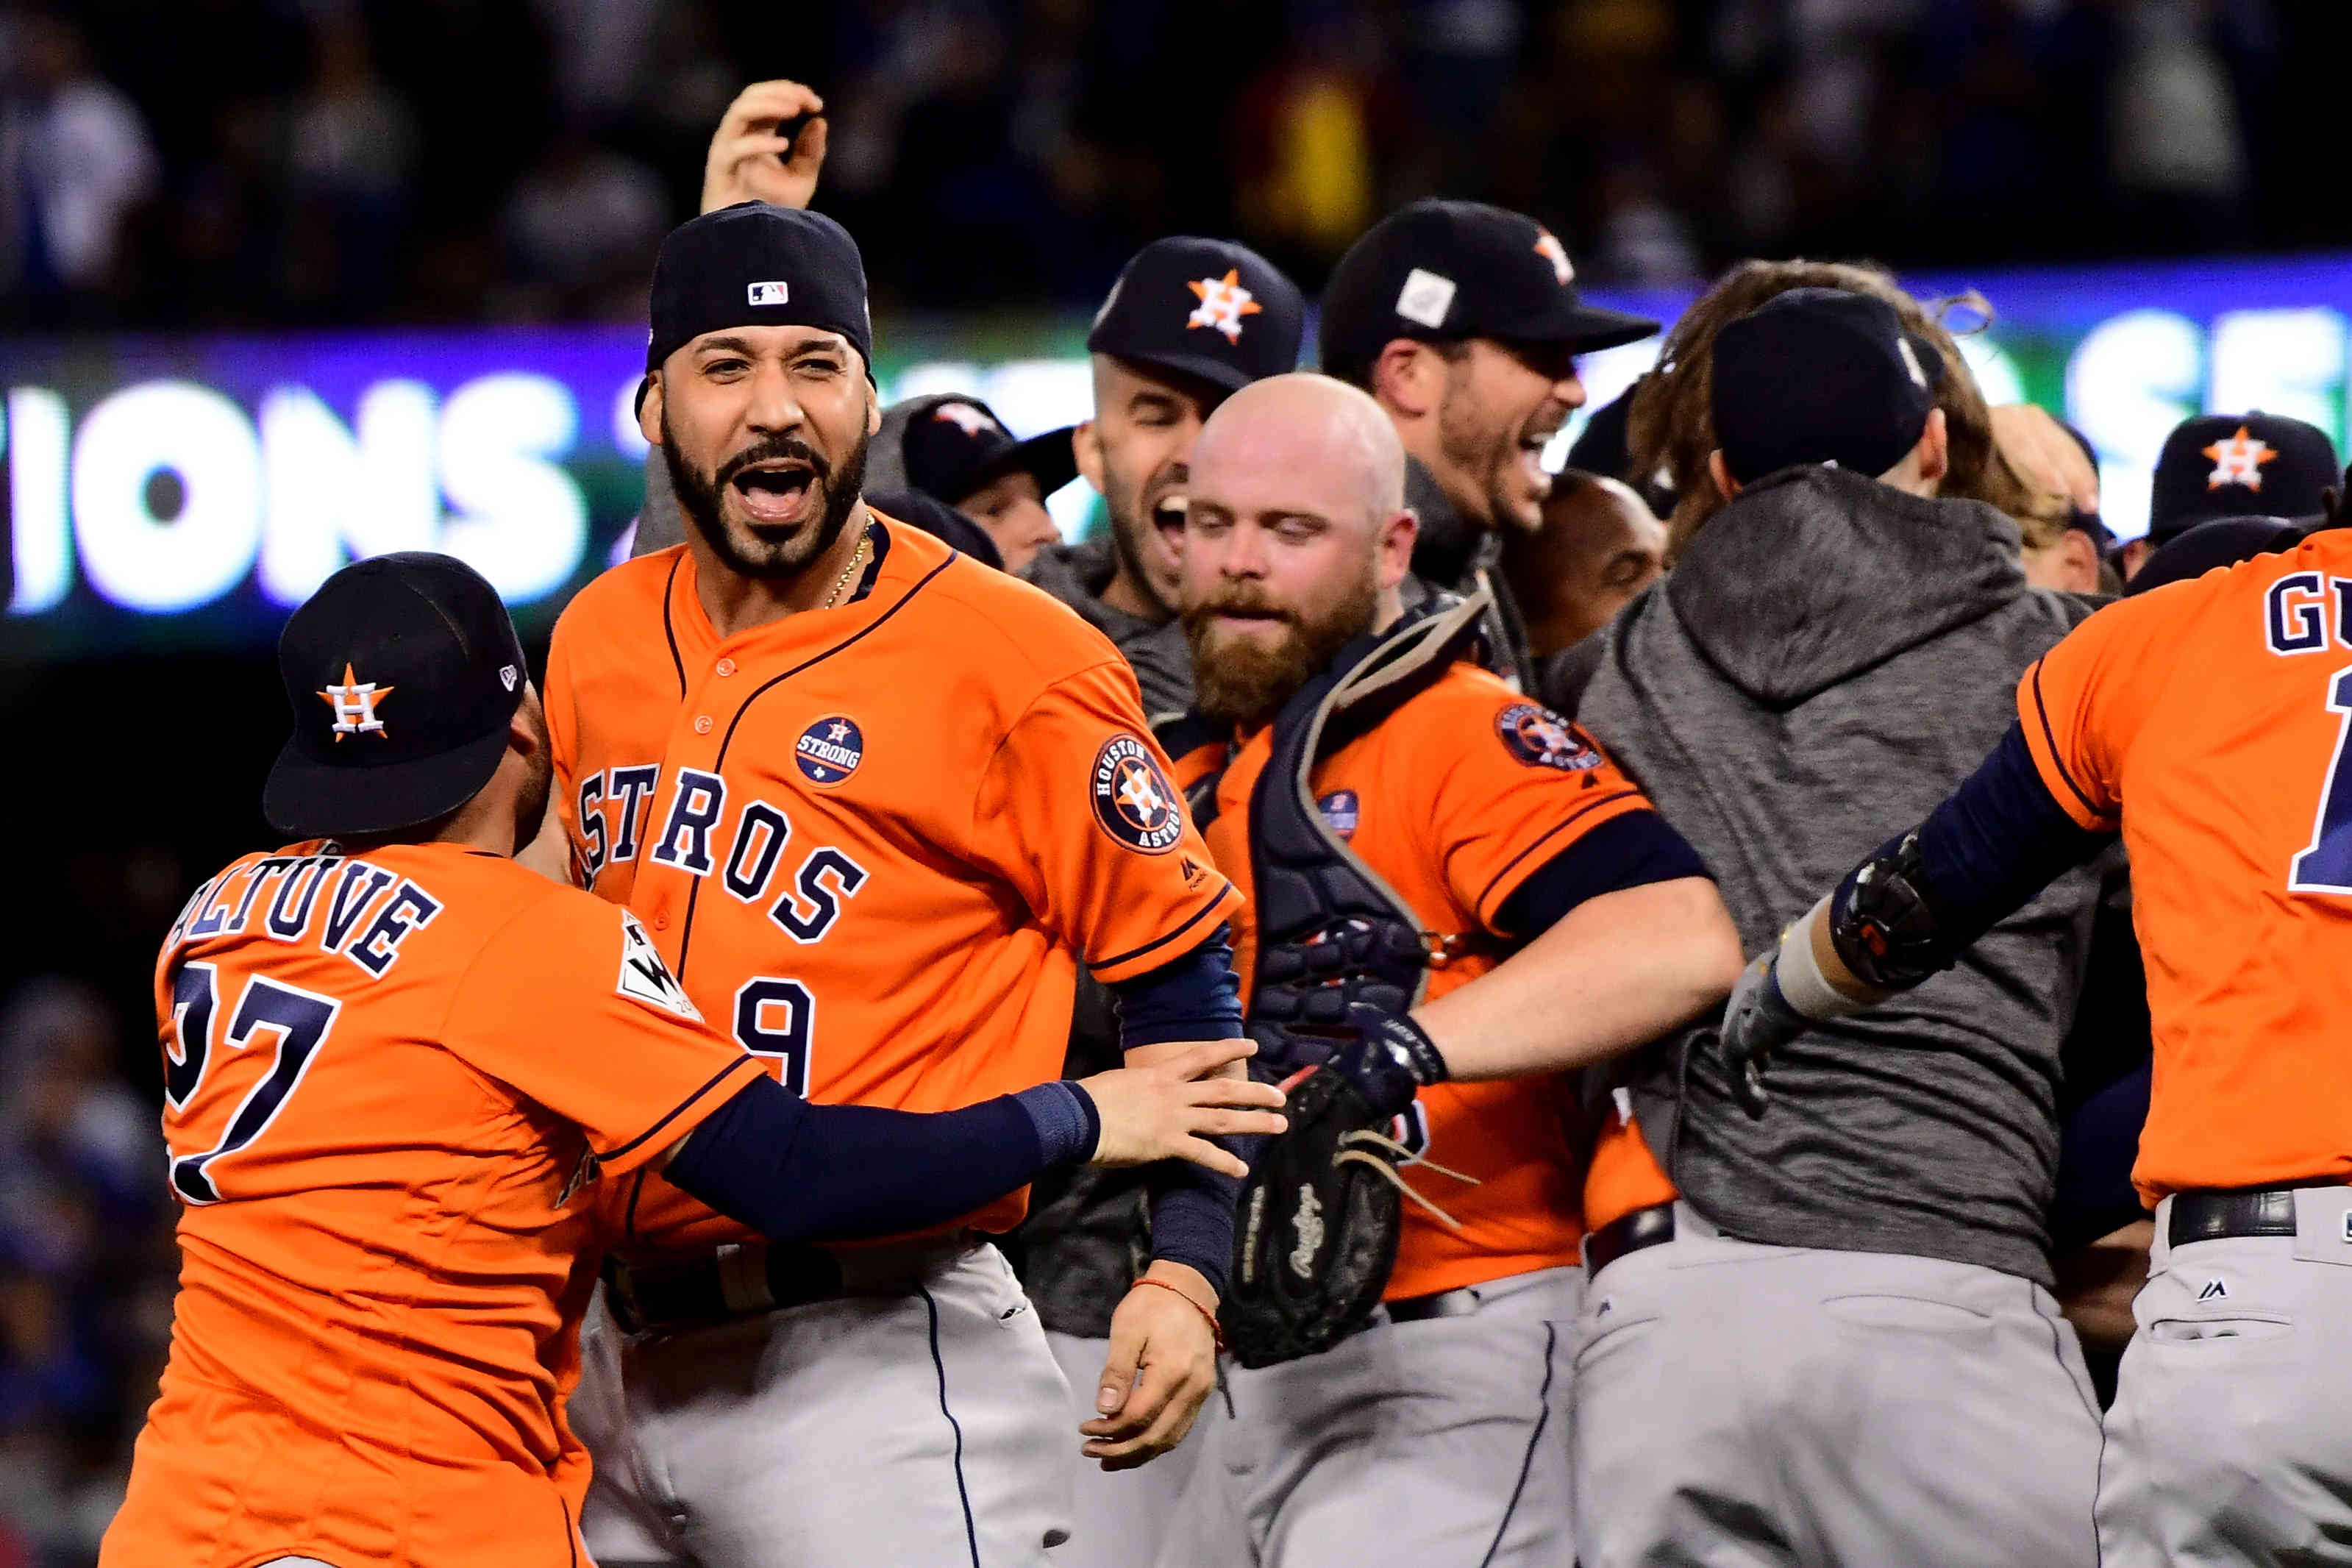 Bono, postemporada, Houston Astros, Astros de Houston, récord, supera, 2014, ganancias